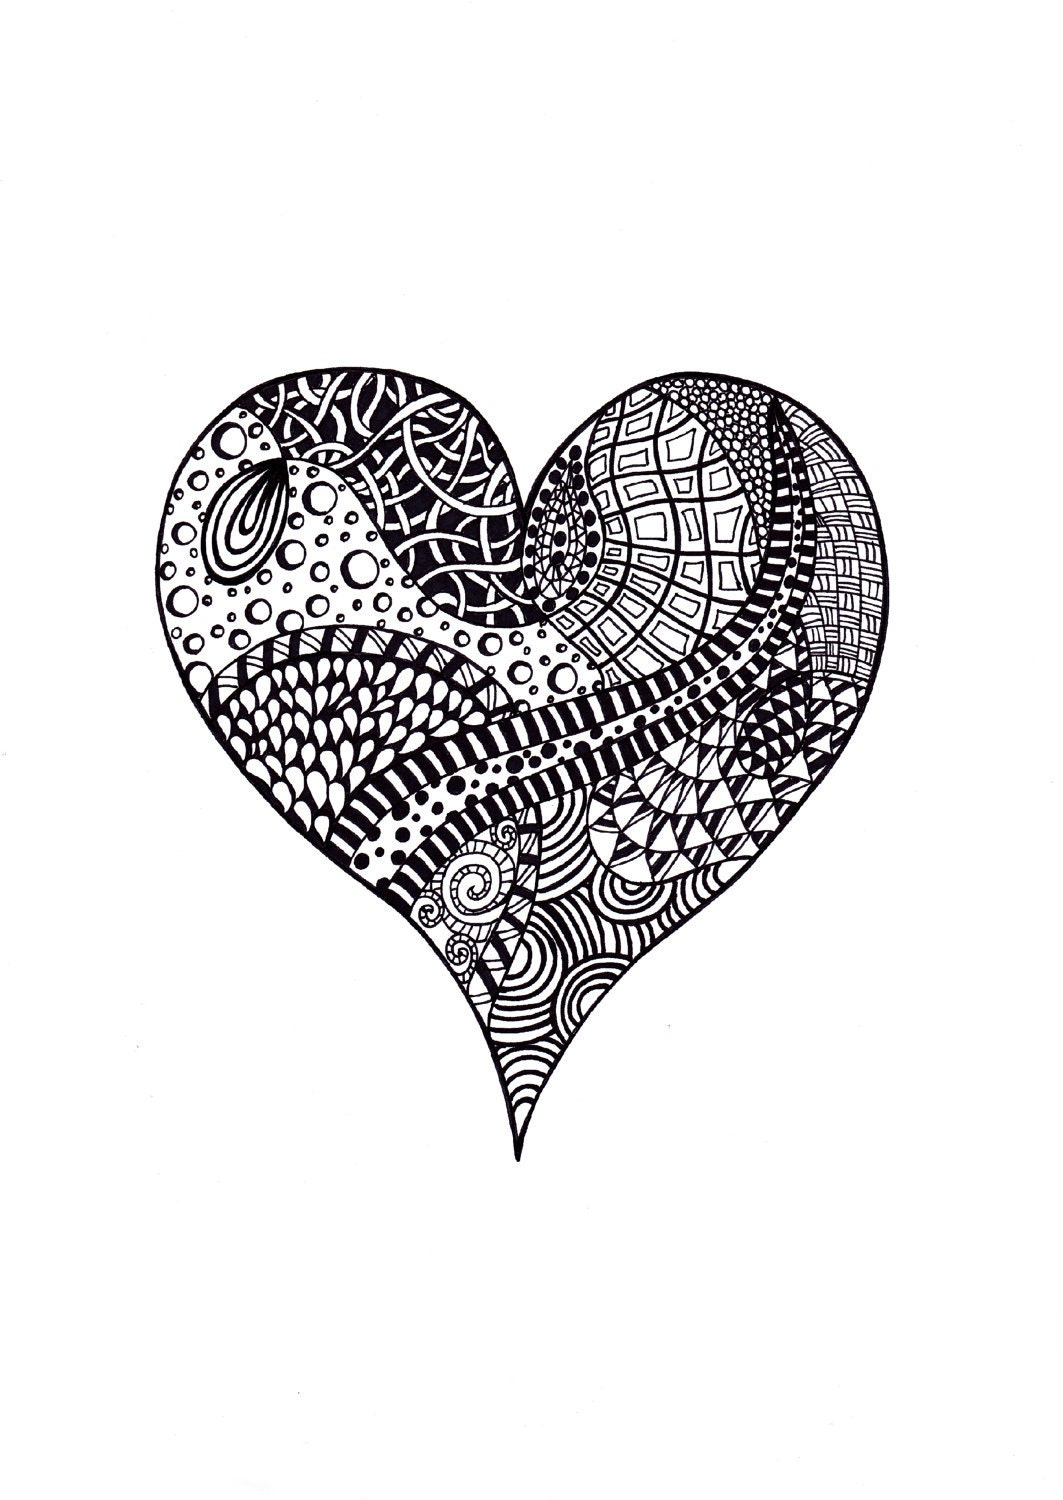 Abstract Heart Print Valentine's Day Zentangle Inspired